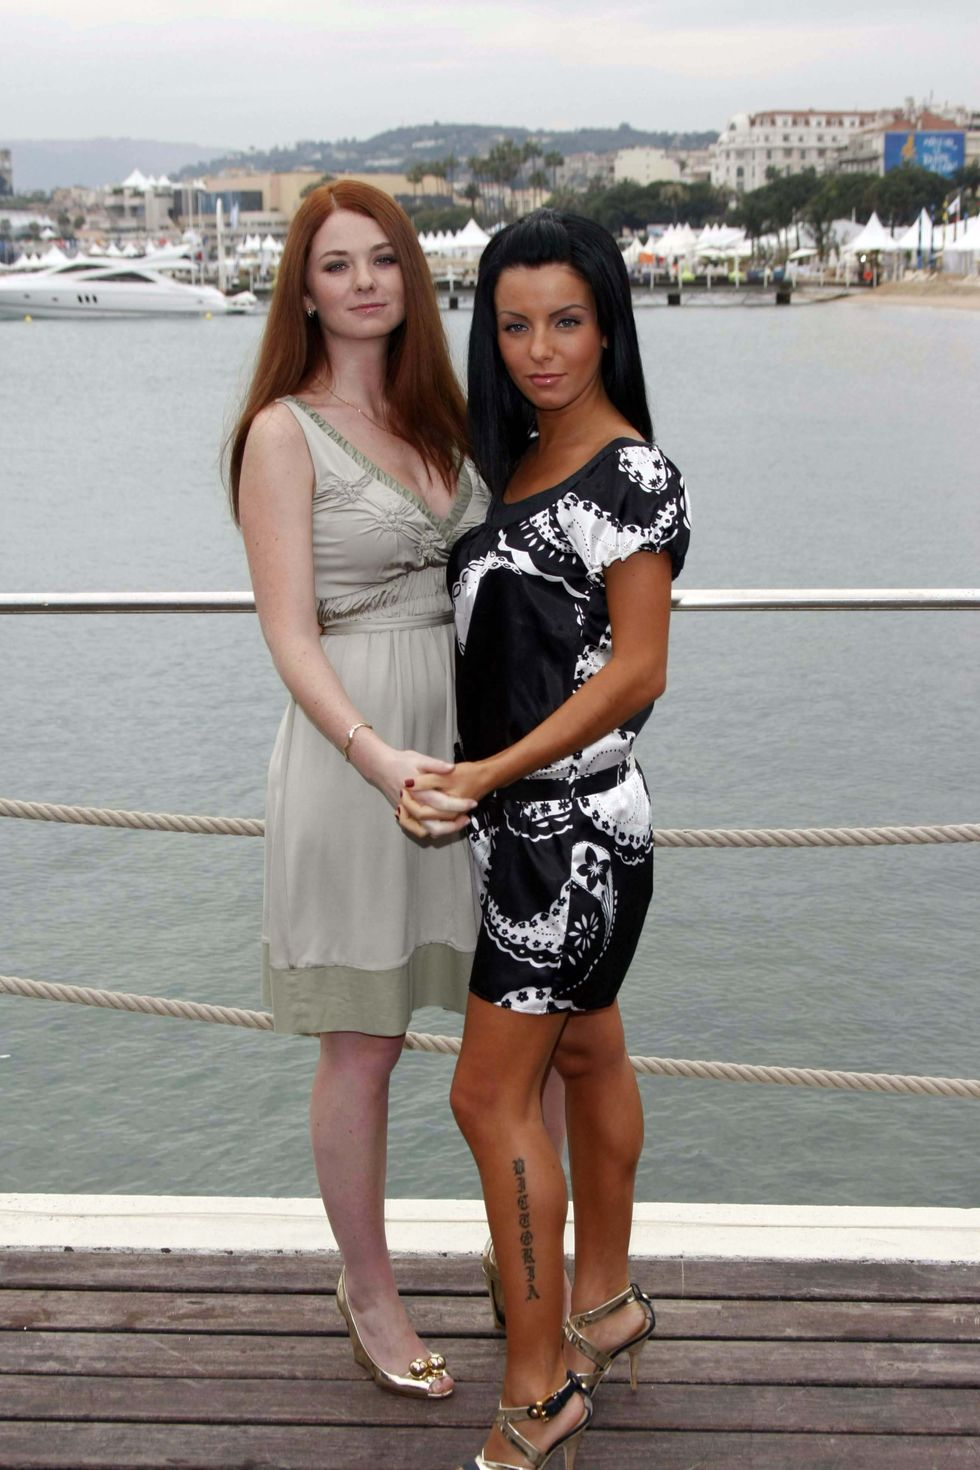 julia-volkova-and-elena-katina-you-and-i-movie-promotion-in-cannes-01